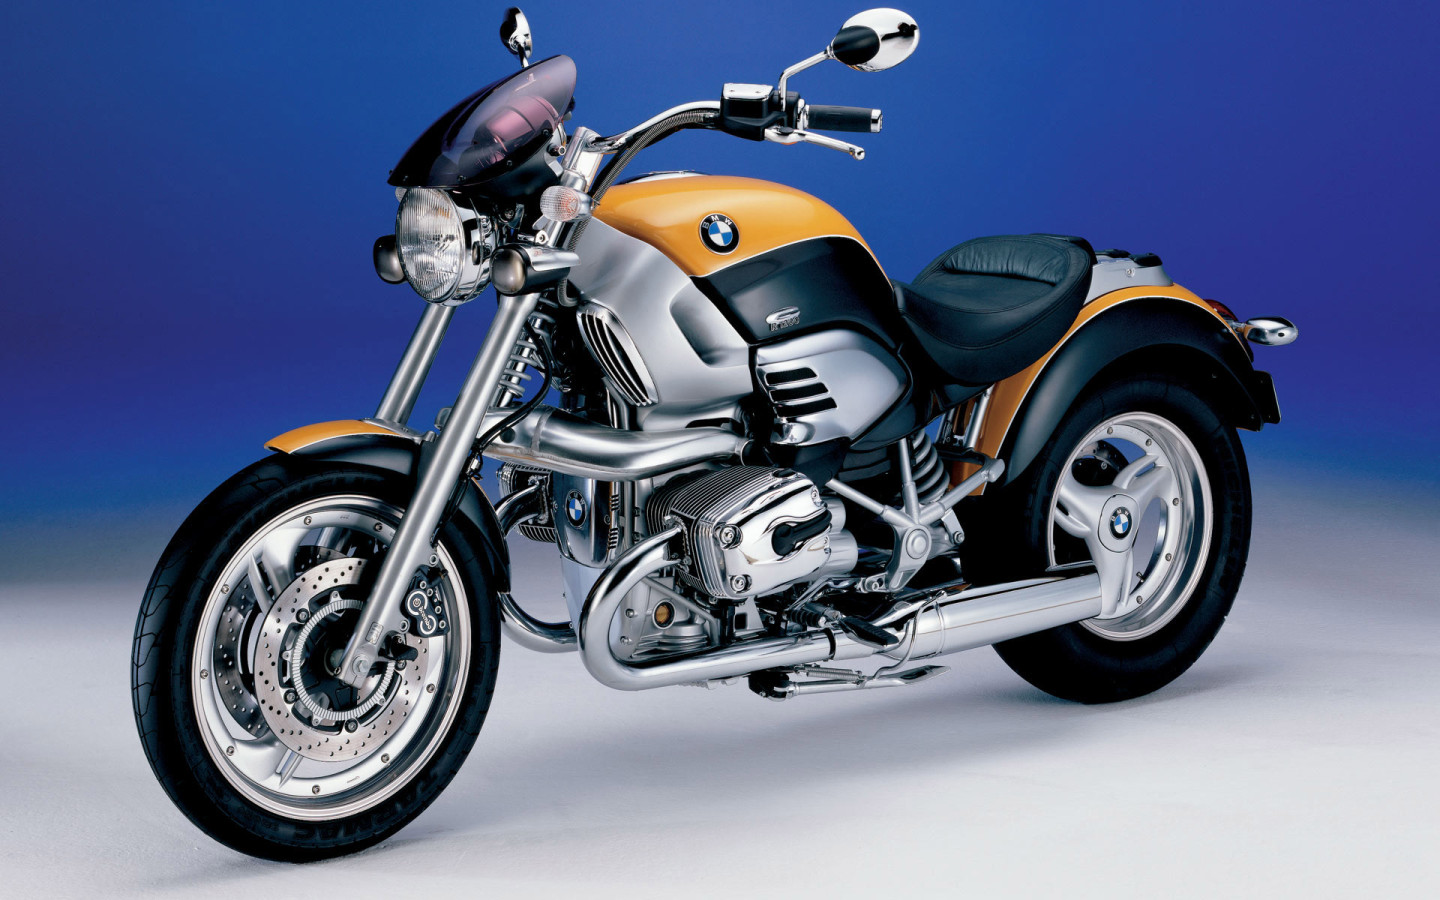 wonderful-bmw-motorcycle-high-definition-wallpaper-for-desktop-background-download-free